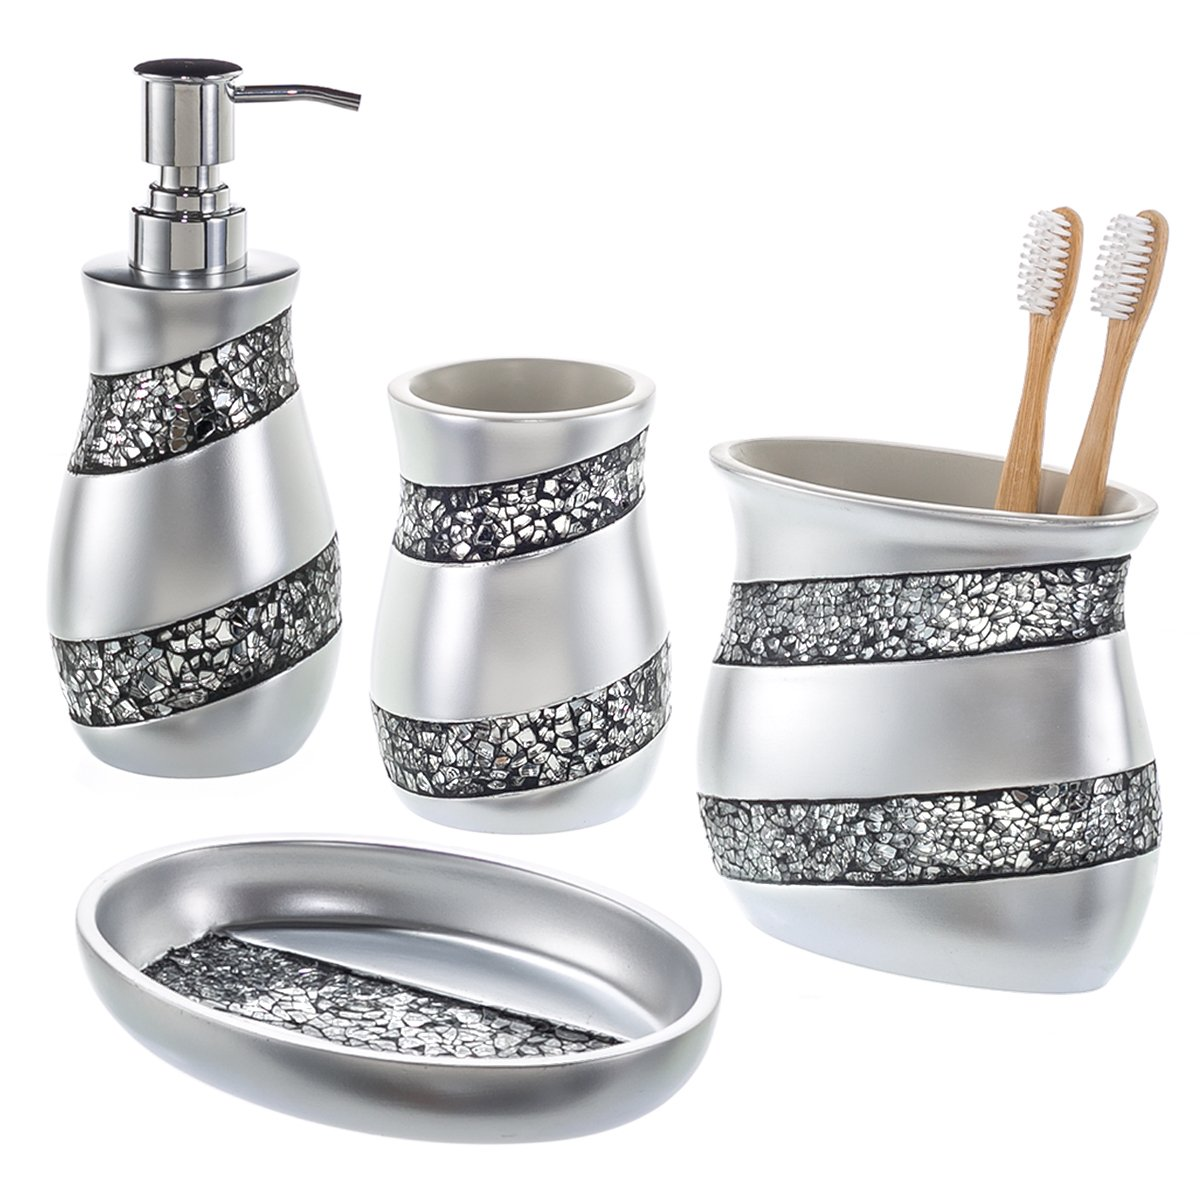 Amazon.com: Creative Scents Bathroom Accessories Set, 4 Piece Silver Mosaic  Glass Luxury Bathroom Gift Set, Includes Soap Dispenser, Toothbrush Holder,  ...